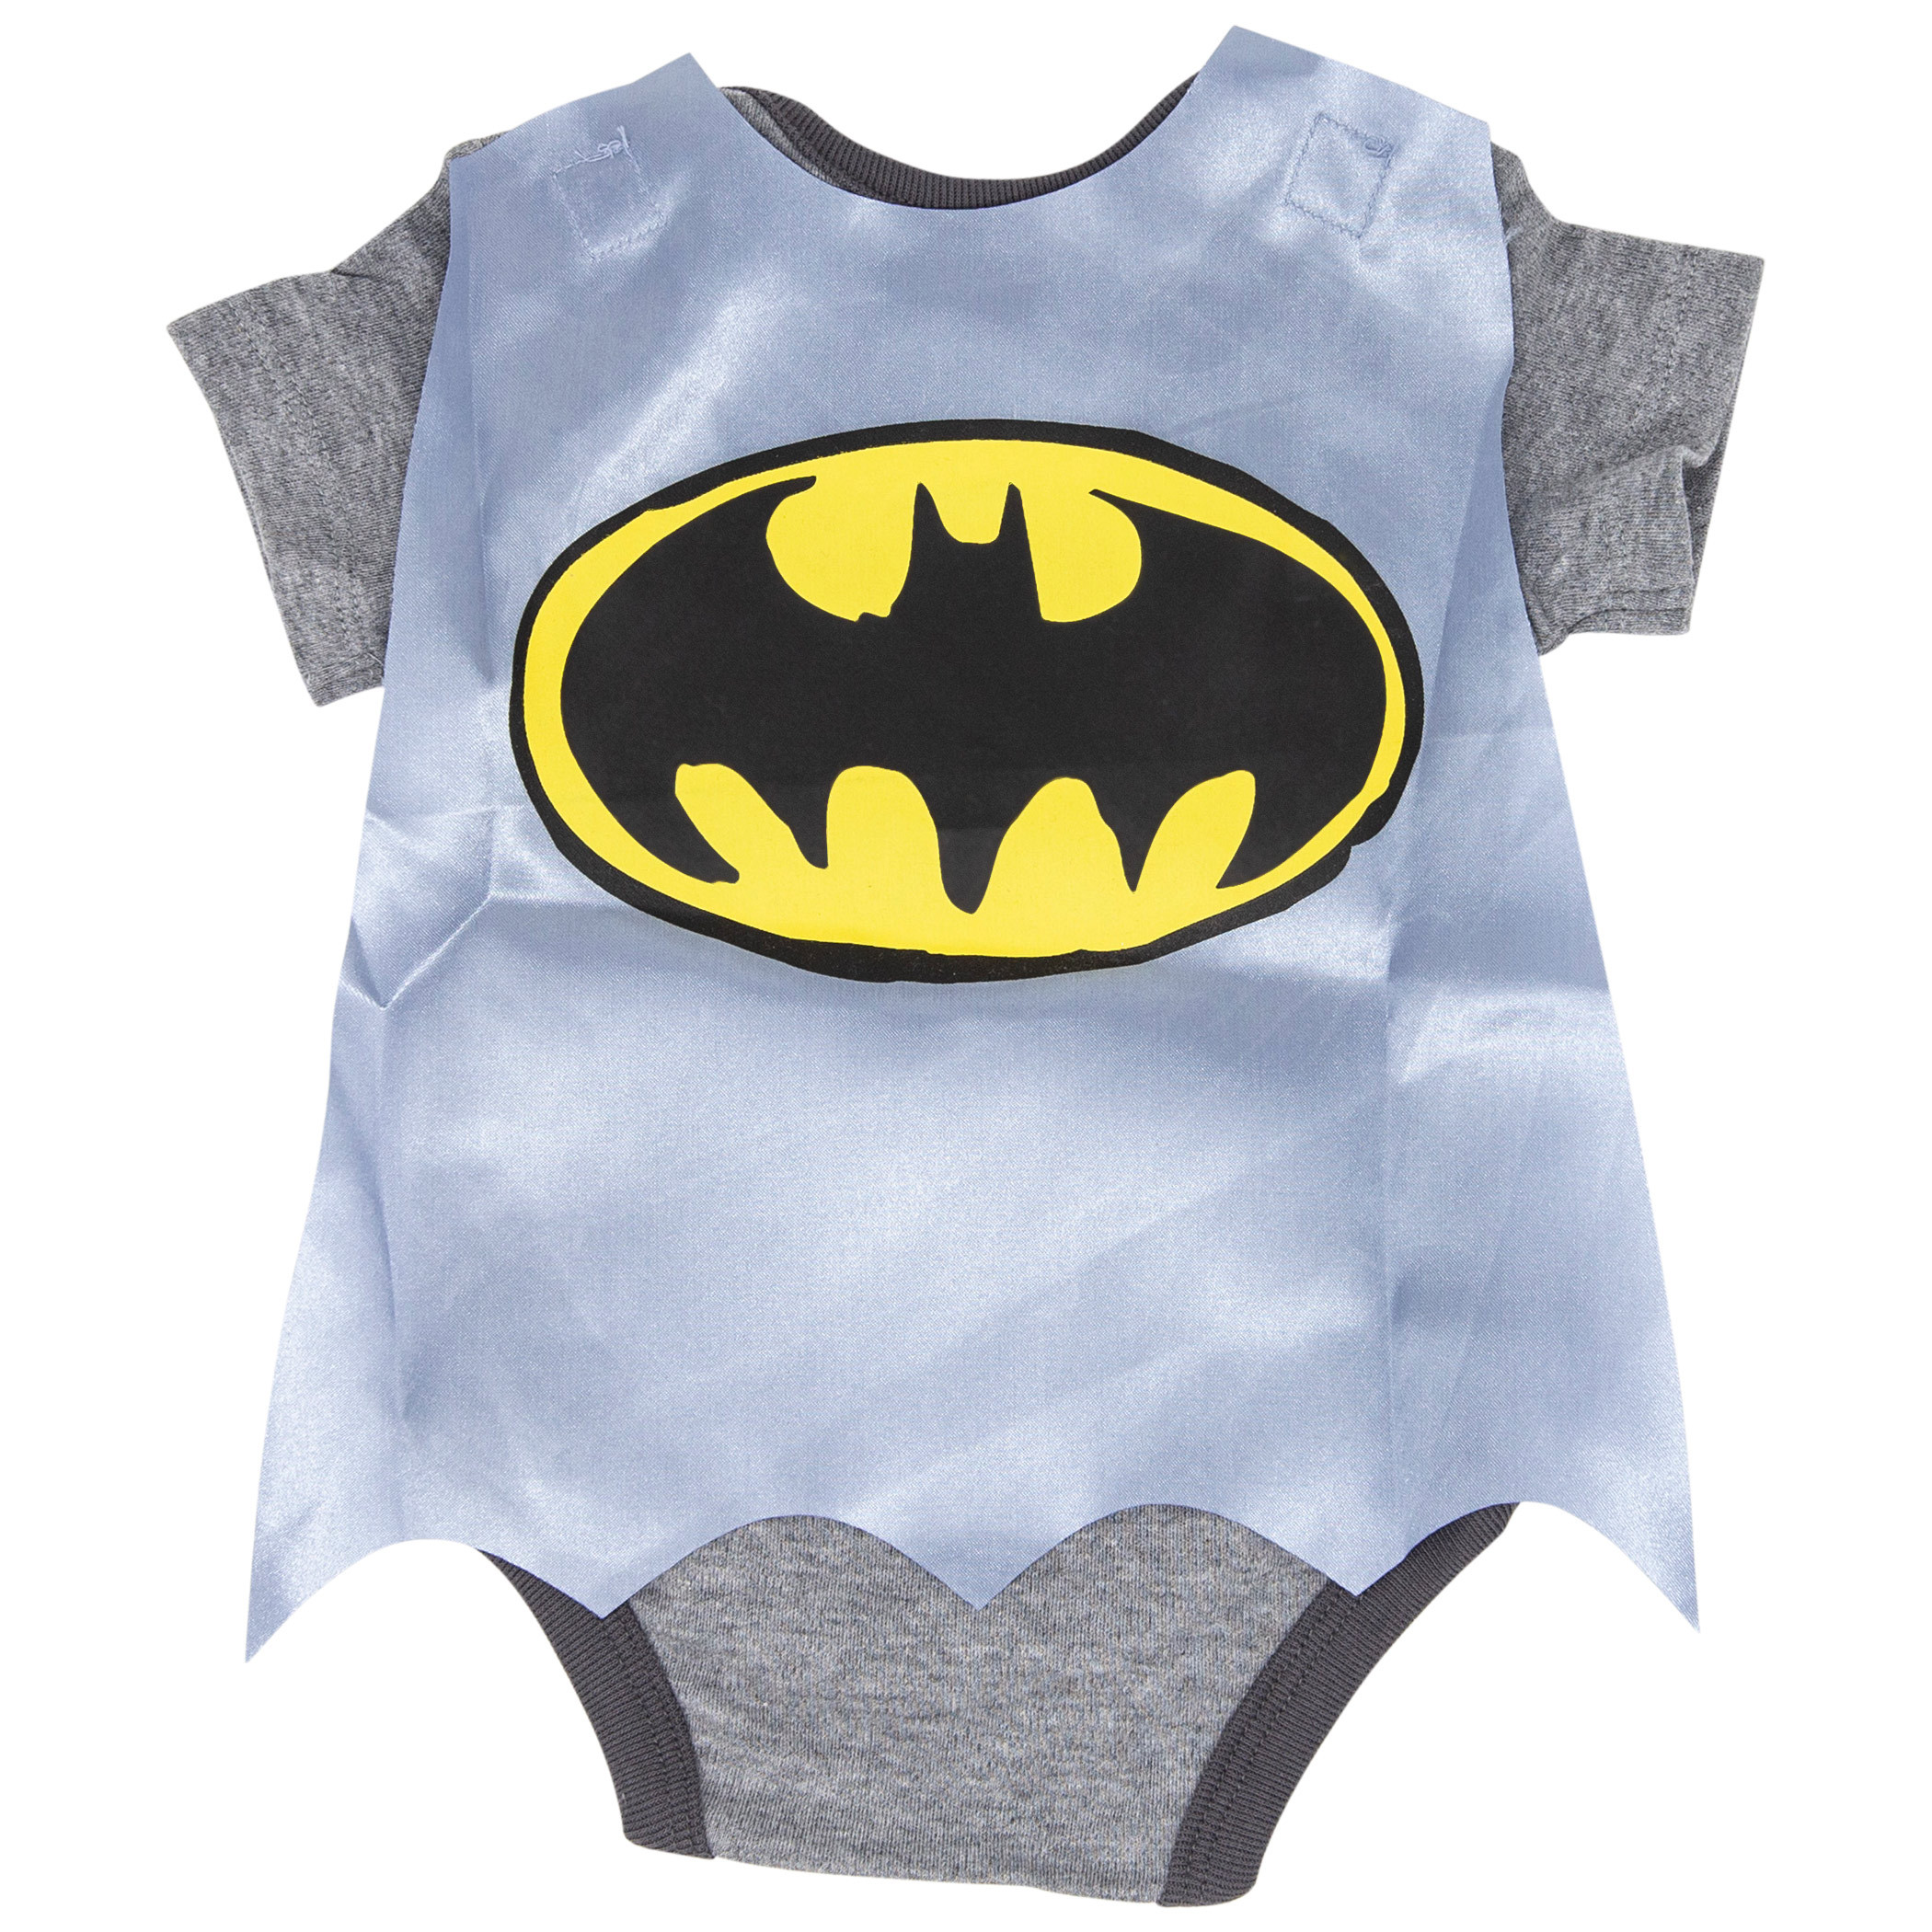 Batman Costume Bodysuit with Detachable Cape